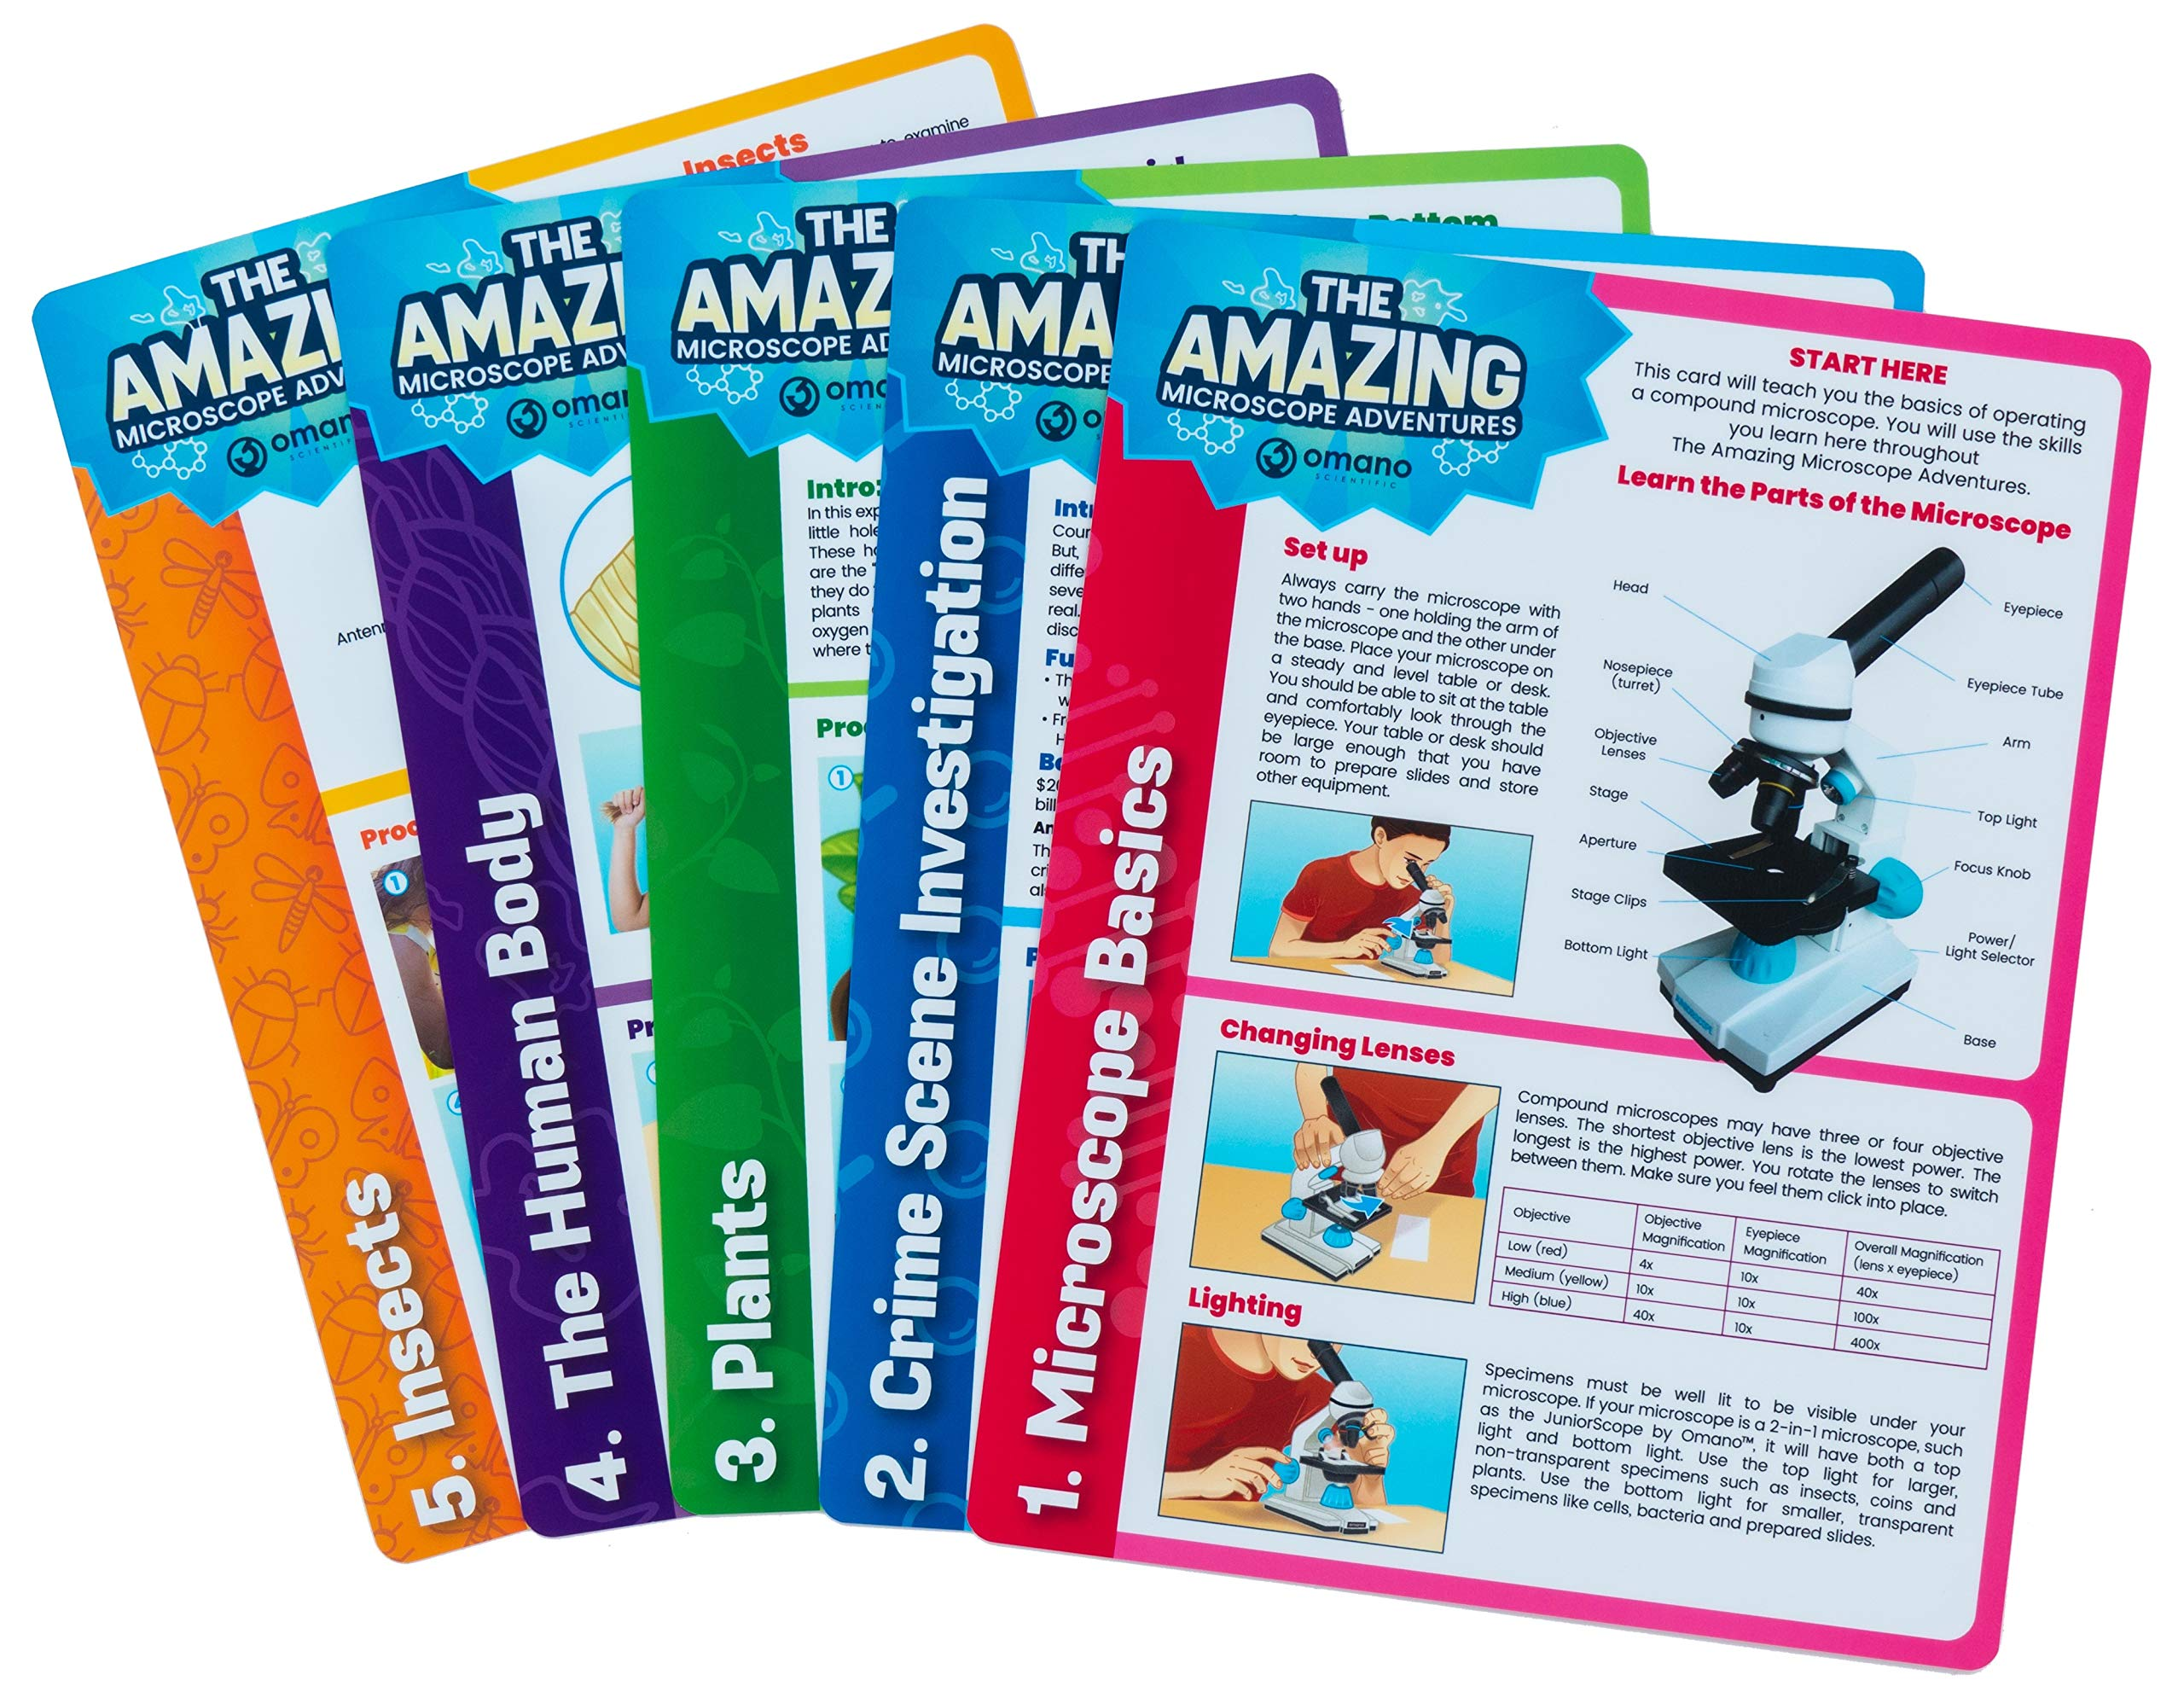 Omano Microscope Experiments and Science Activities for Kids ''The Amazing Microscope Adventures'' (5-Card Pack) Book Alternative, Home, Classroom DIY Scientific Learning by Omano